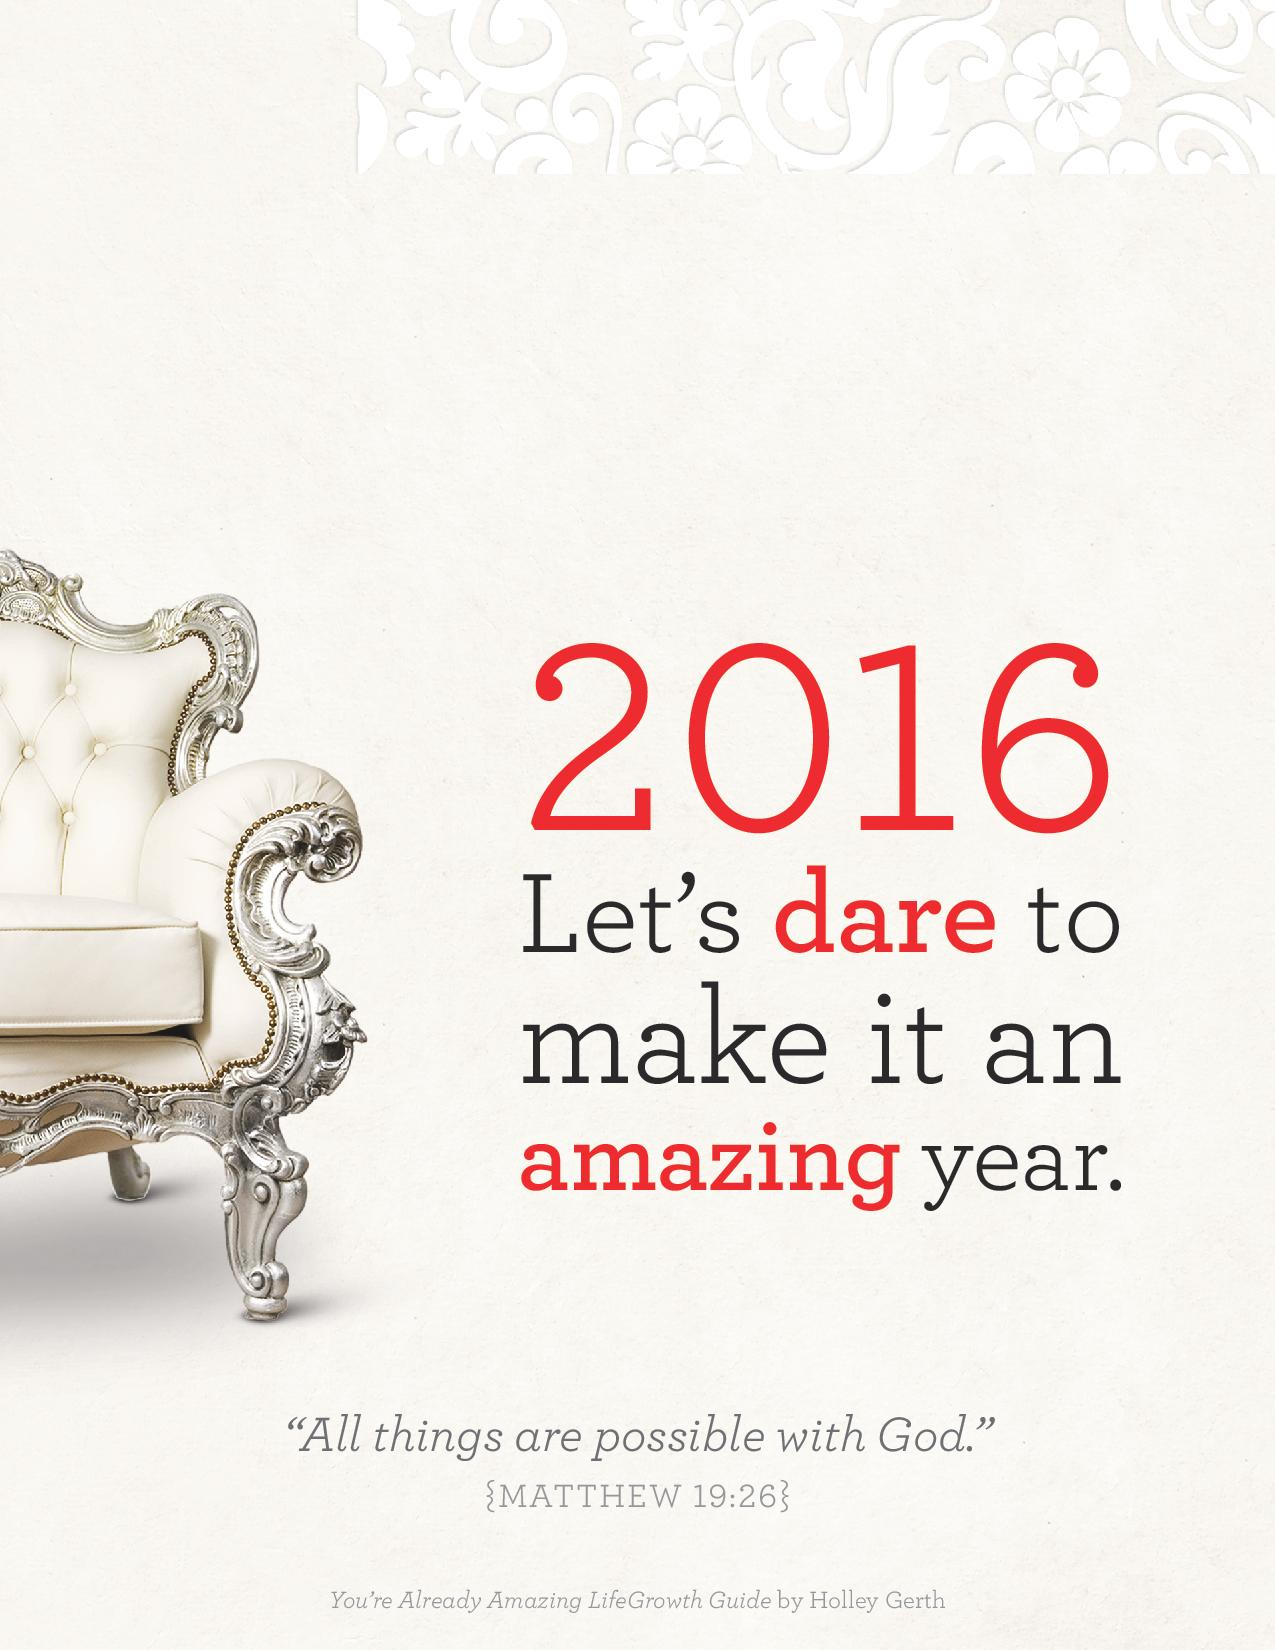 A Wild and Crazy Dare: Let's Make 2016 an Amazing Year